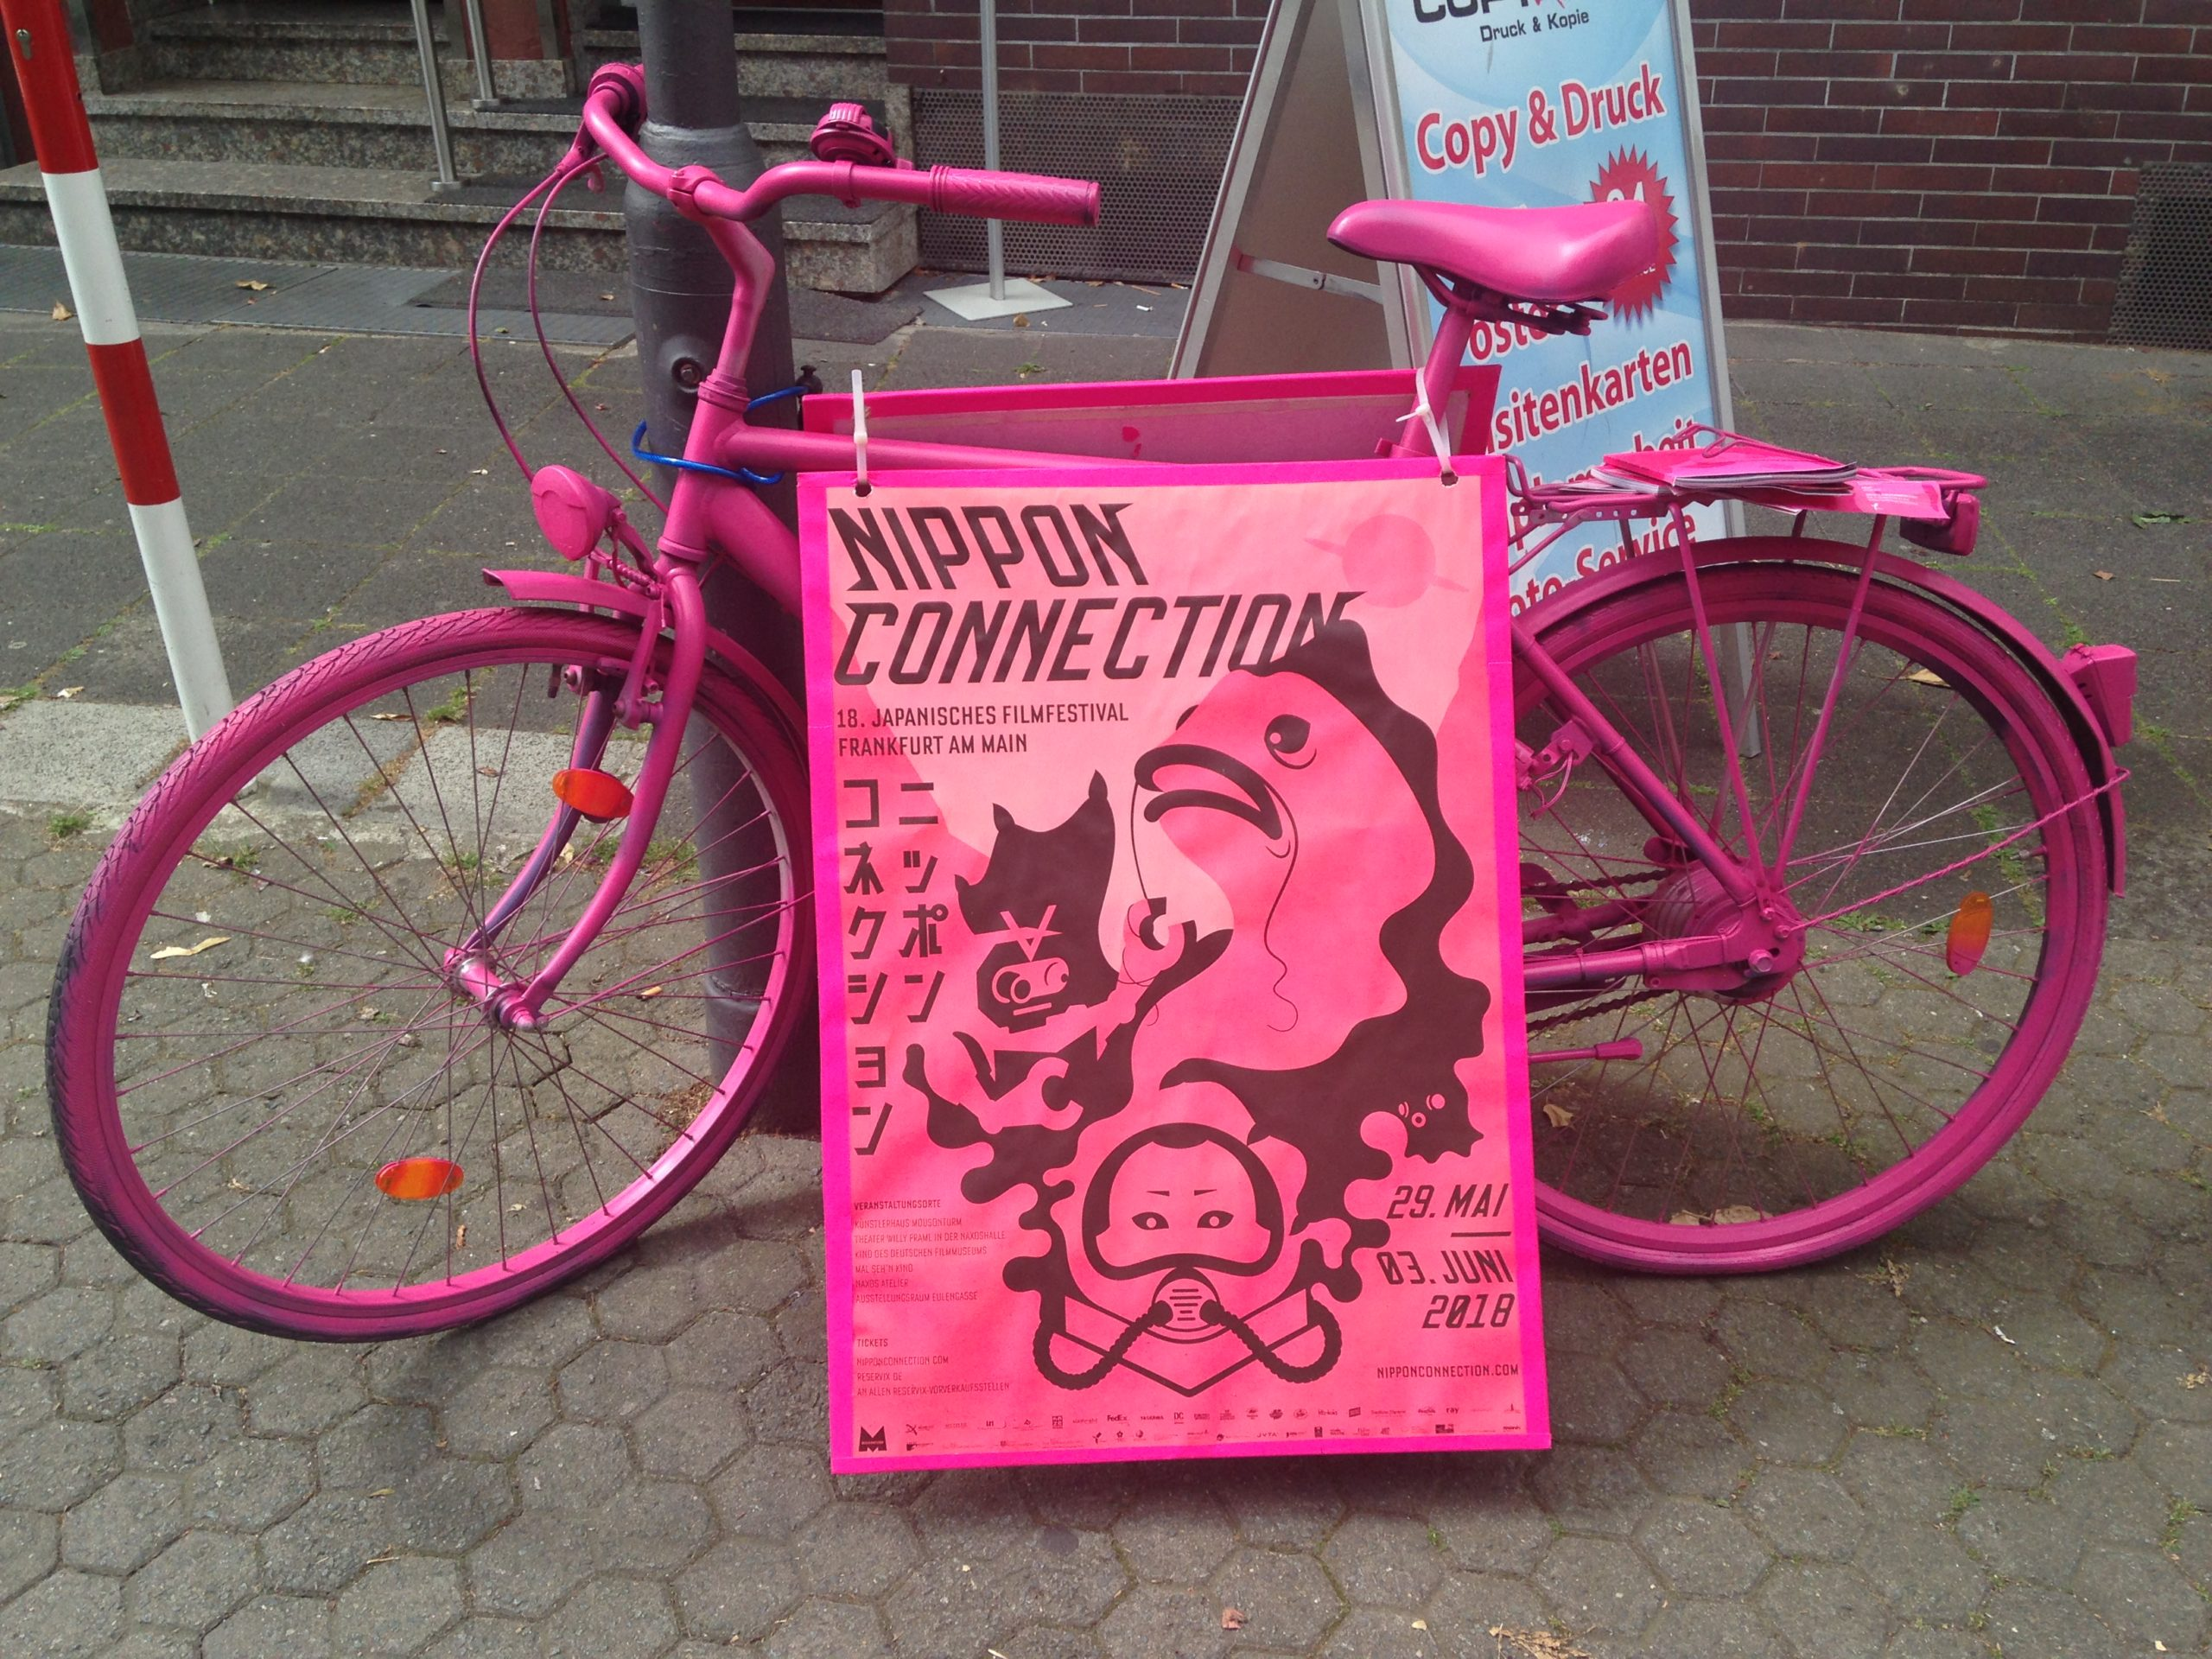 Bicycle with Nippon Connection promotion